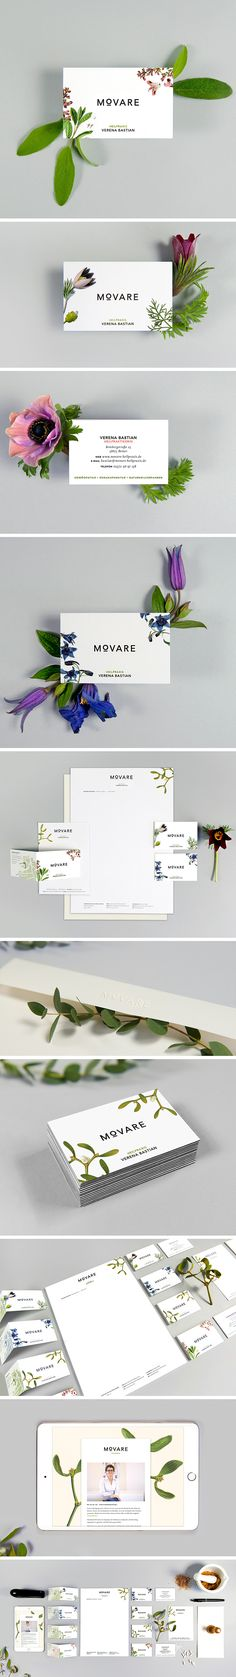 Corporate Design für MOVARE |  Editorial, Logo, Signet, Briefschaft, Business cards, Print, Web, Illustration, floral, clean, modern, reduced, Photography, Heilpraxis, manx, manxdesign, agency |  www.manx.de